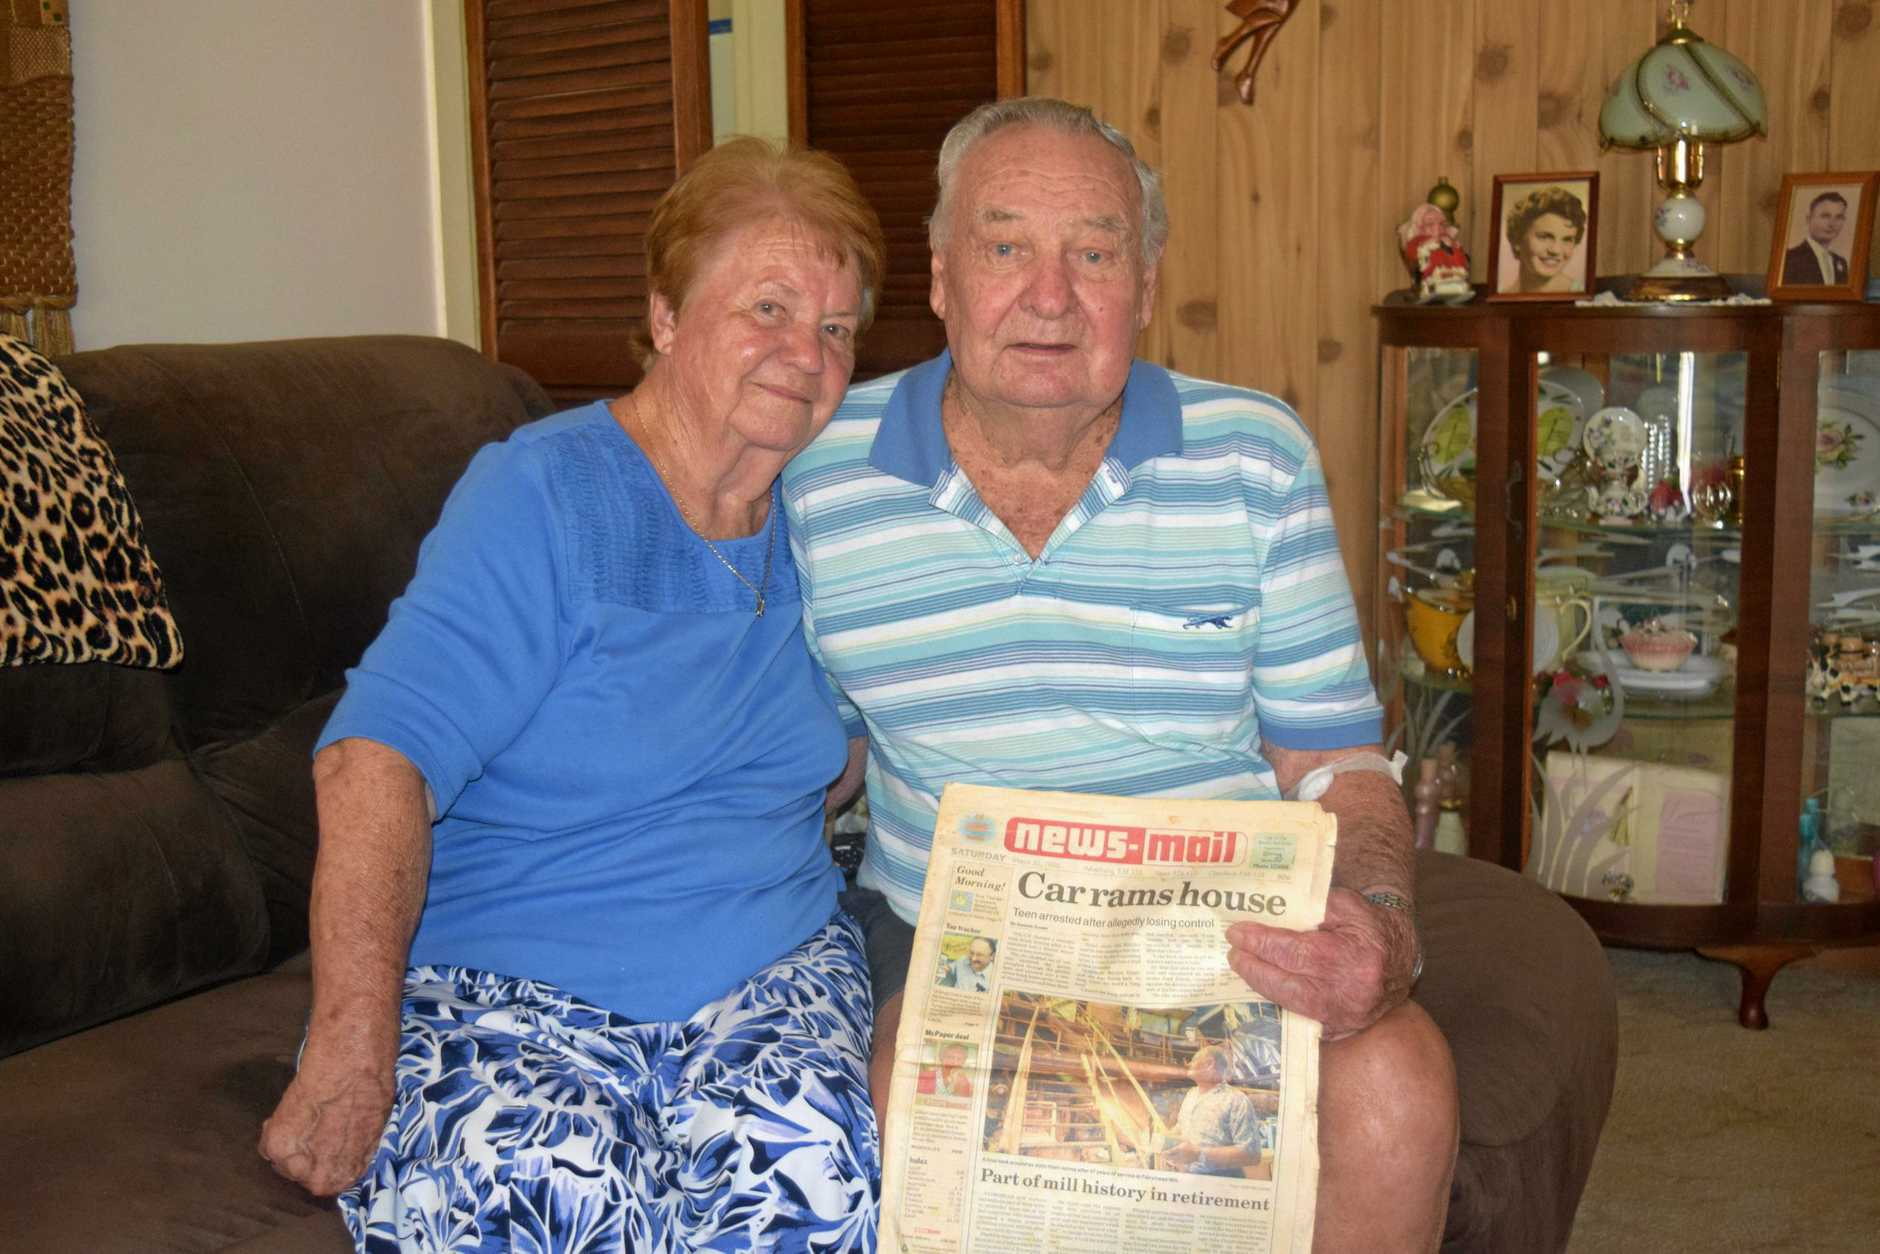 John Hunt, 85, and wife Joan Hunt, 78, holding a 1996 copy of the NewsMail from when he was featured on the front page in honour of his retirement from the Fairymead Mill.